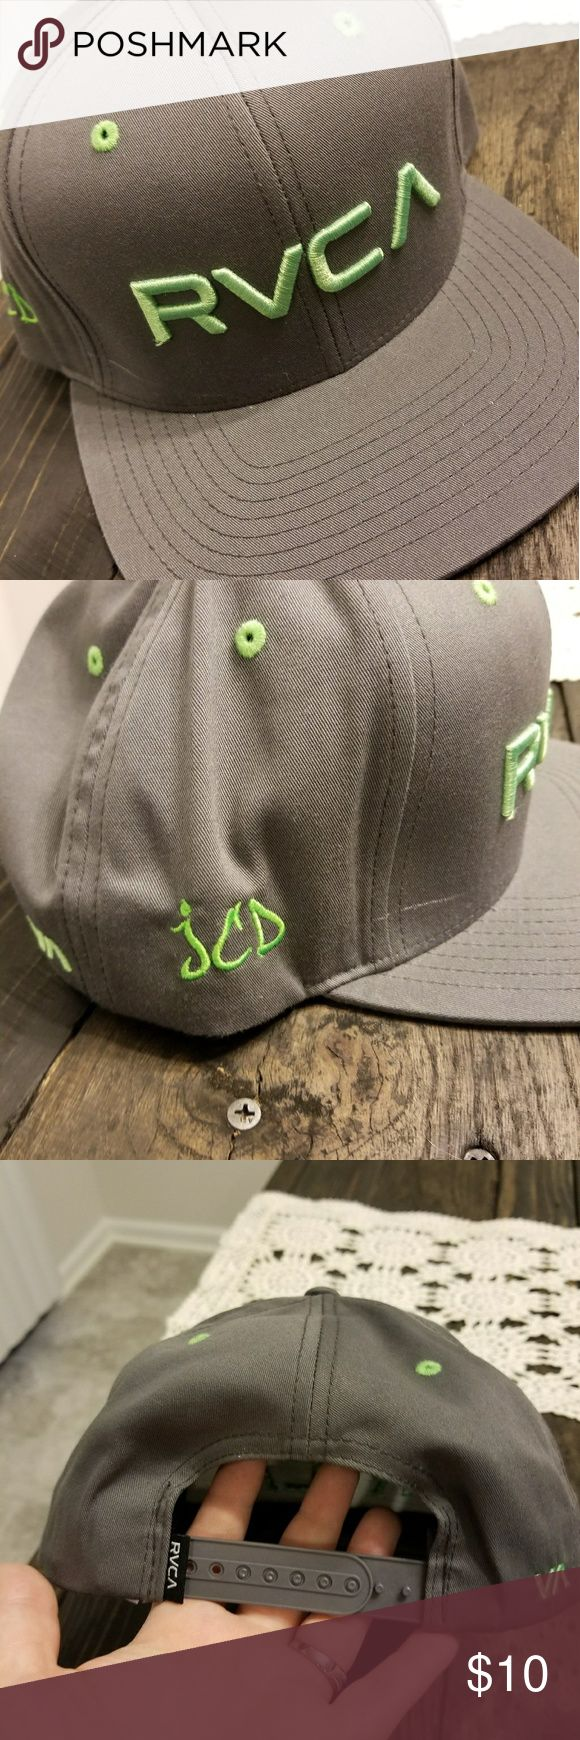 RVCA Snapback hat RVCA snapback hat, this has custom embroidery on the side. It is initials. RVCA Accessories Hats